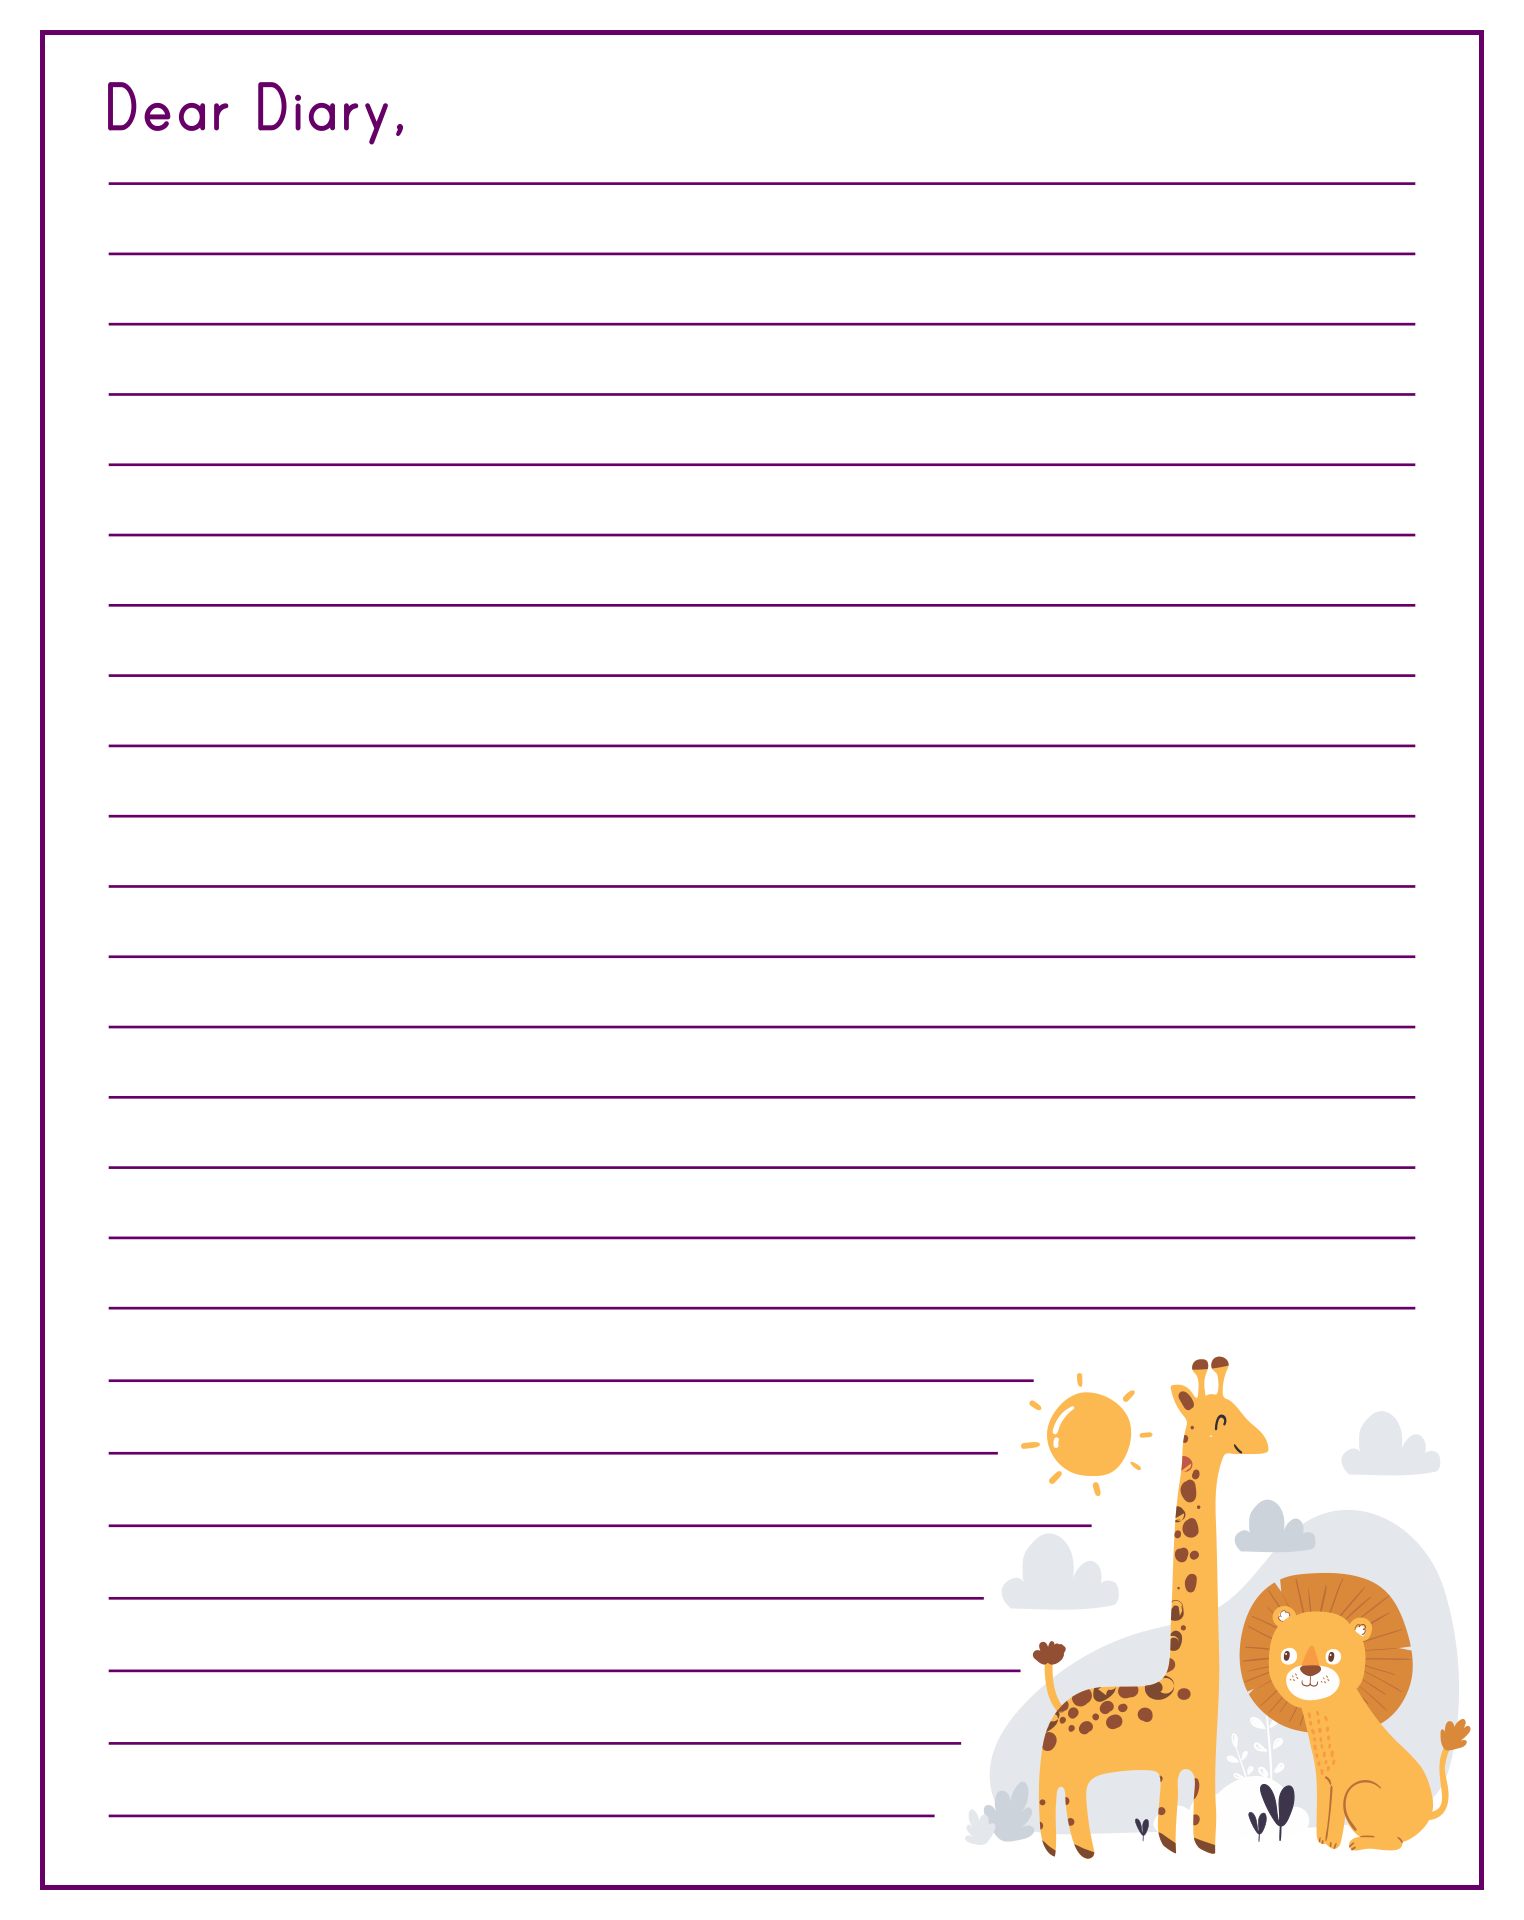 Diary Writing Paper Template